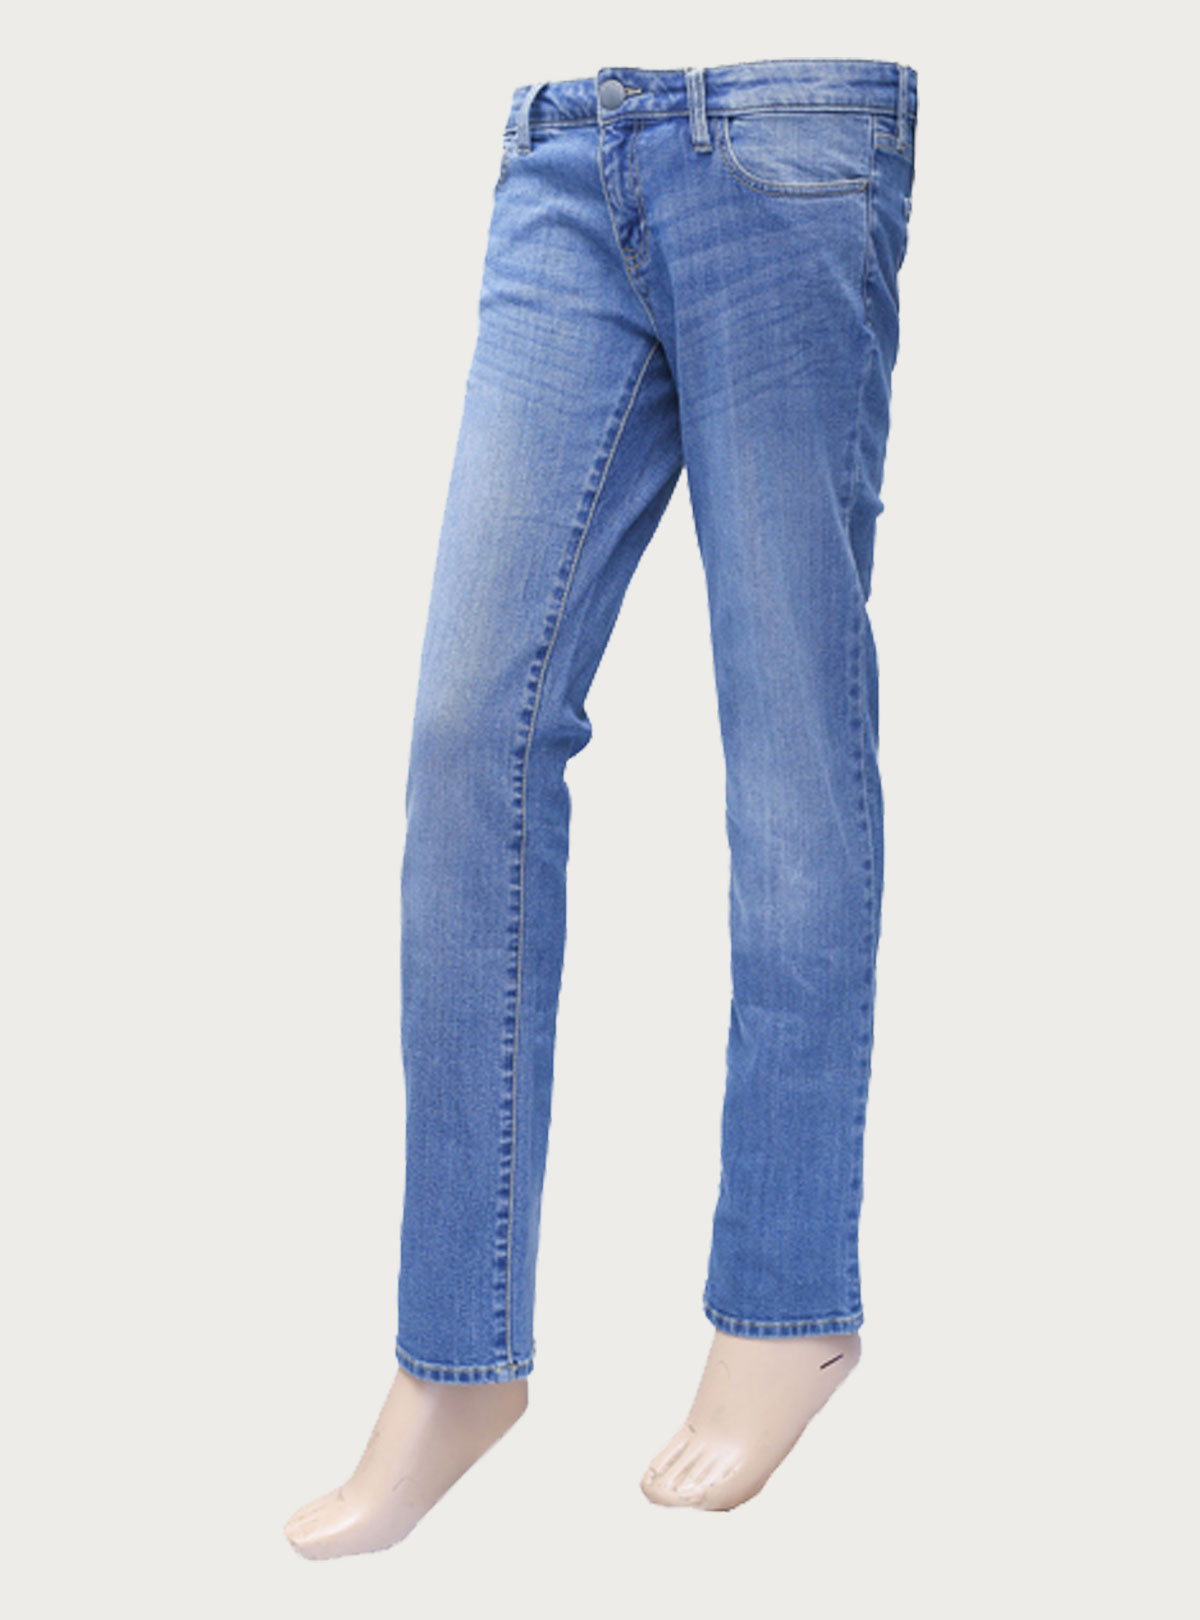 Stylish Jeans